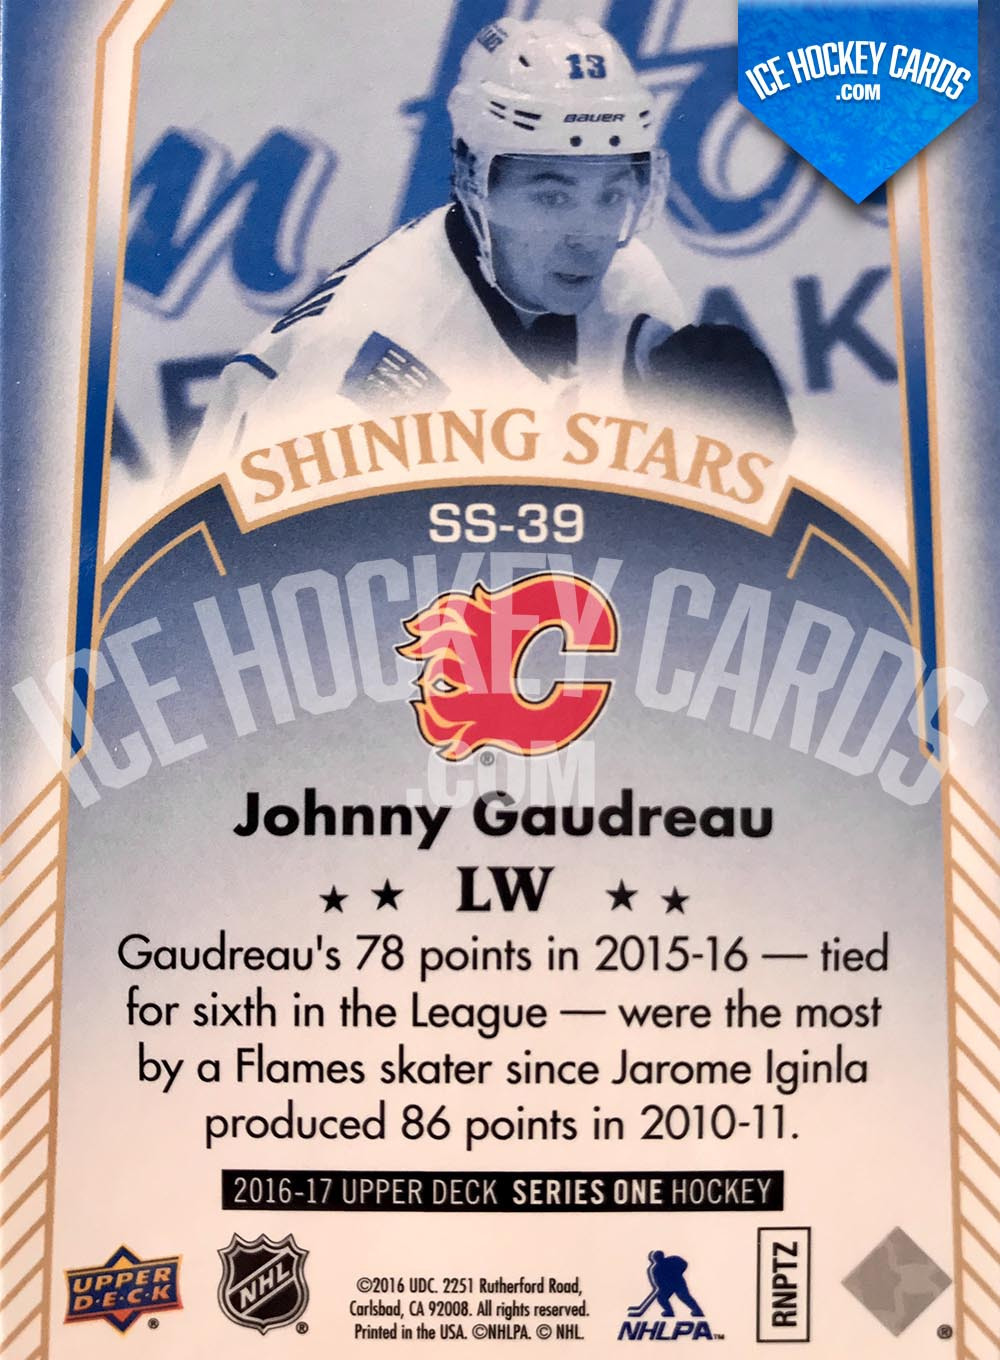 Upper Deck - Series 1 2016-17 - Johnny Gaudreau Shining Stars Blue Card back